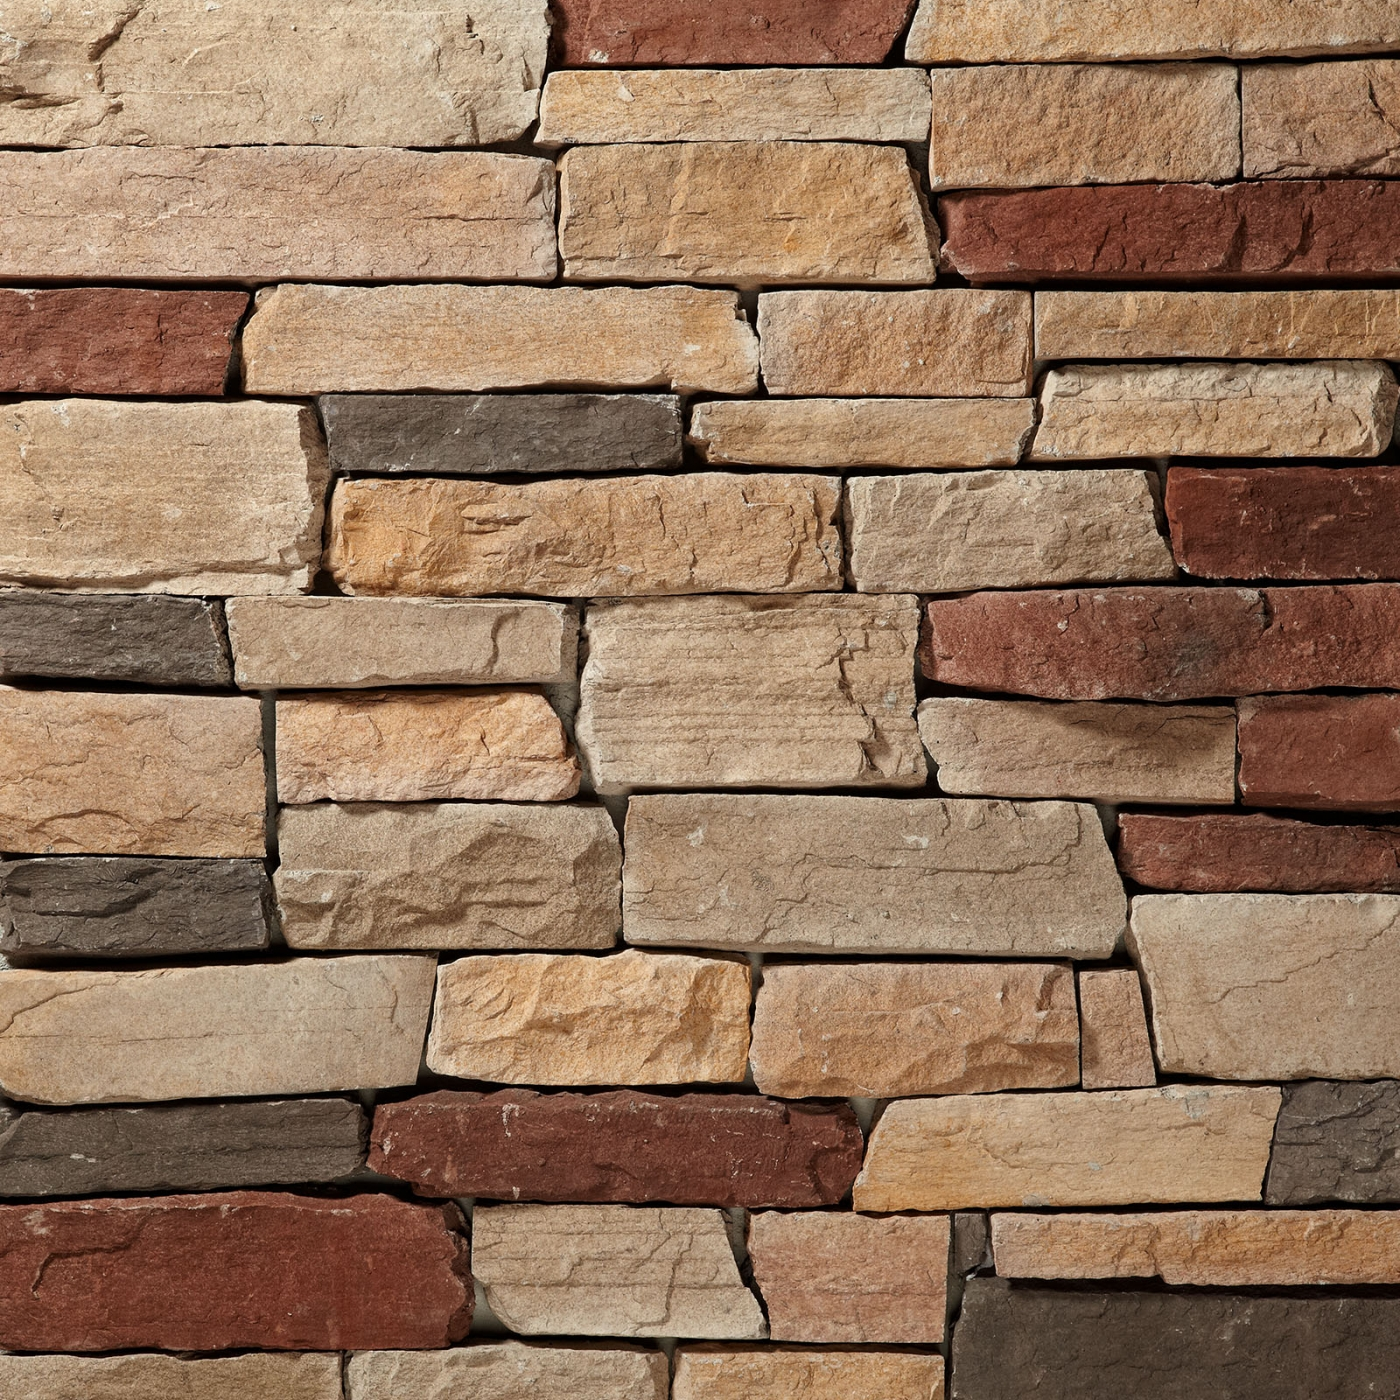 Featherwalk Tuscan Ledgestone Stone Veneer from Environmental StoneWorks